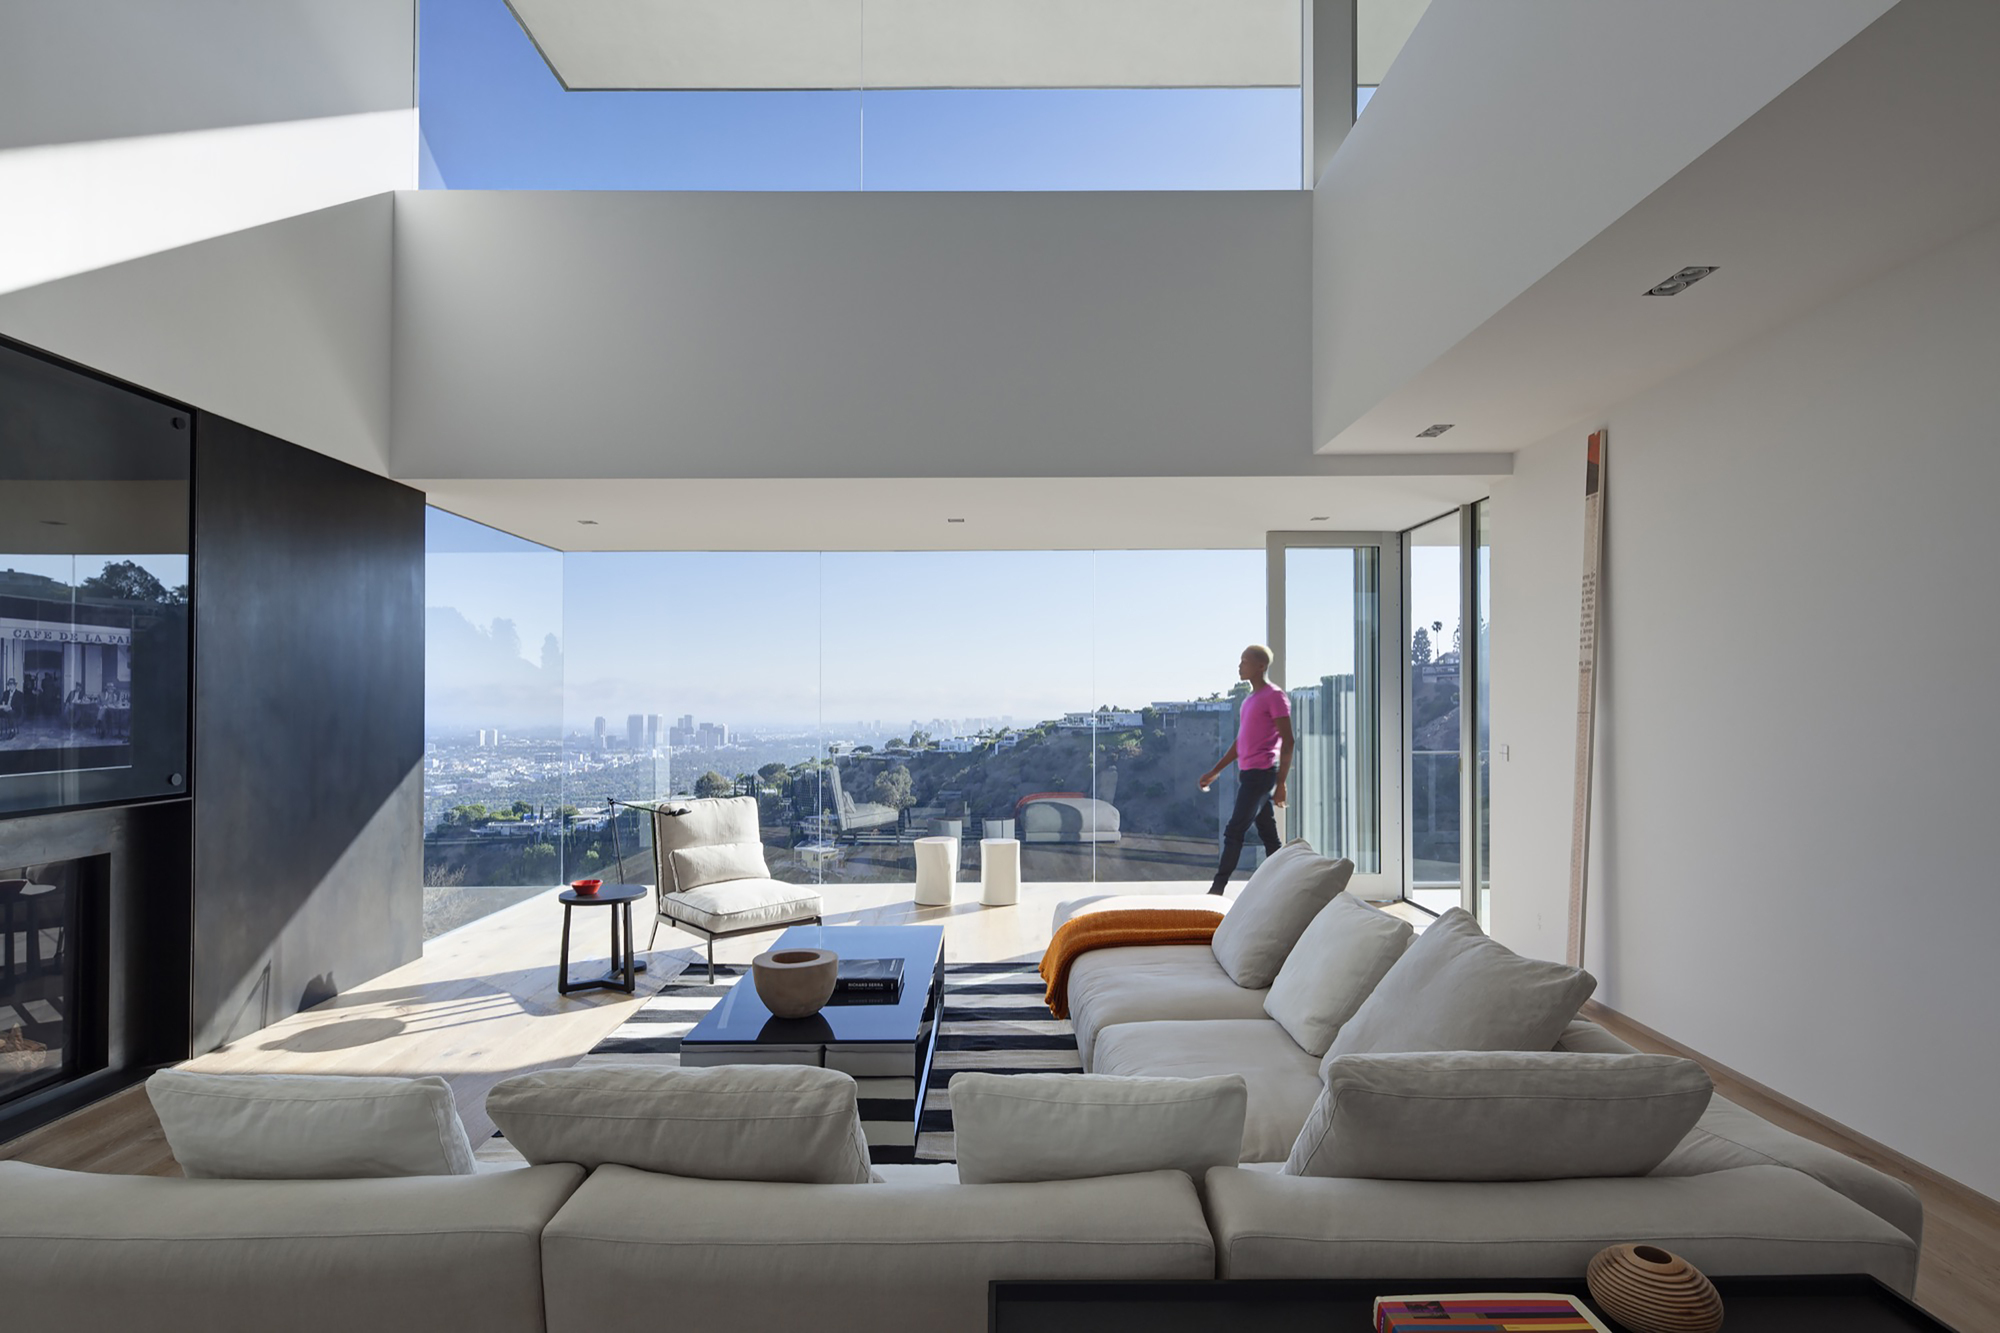 Sunset plaza drive gwdesign archdaily